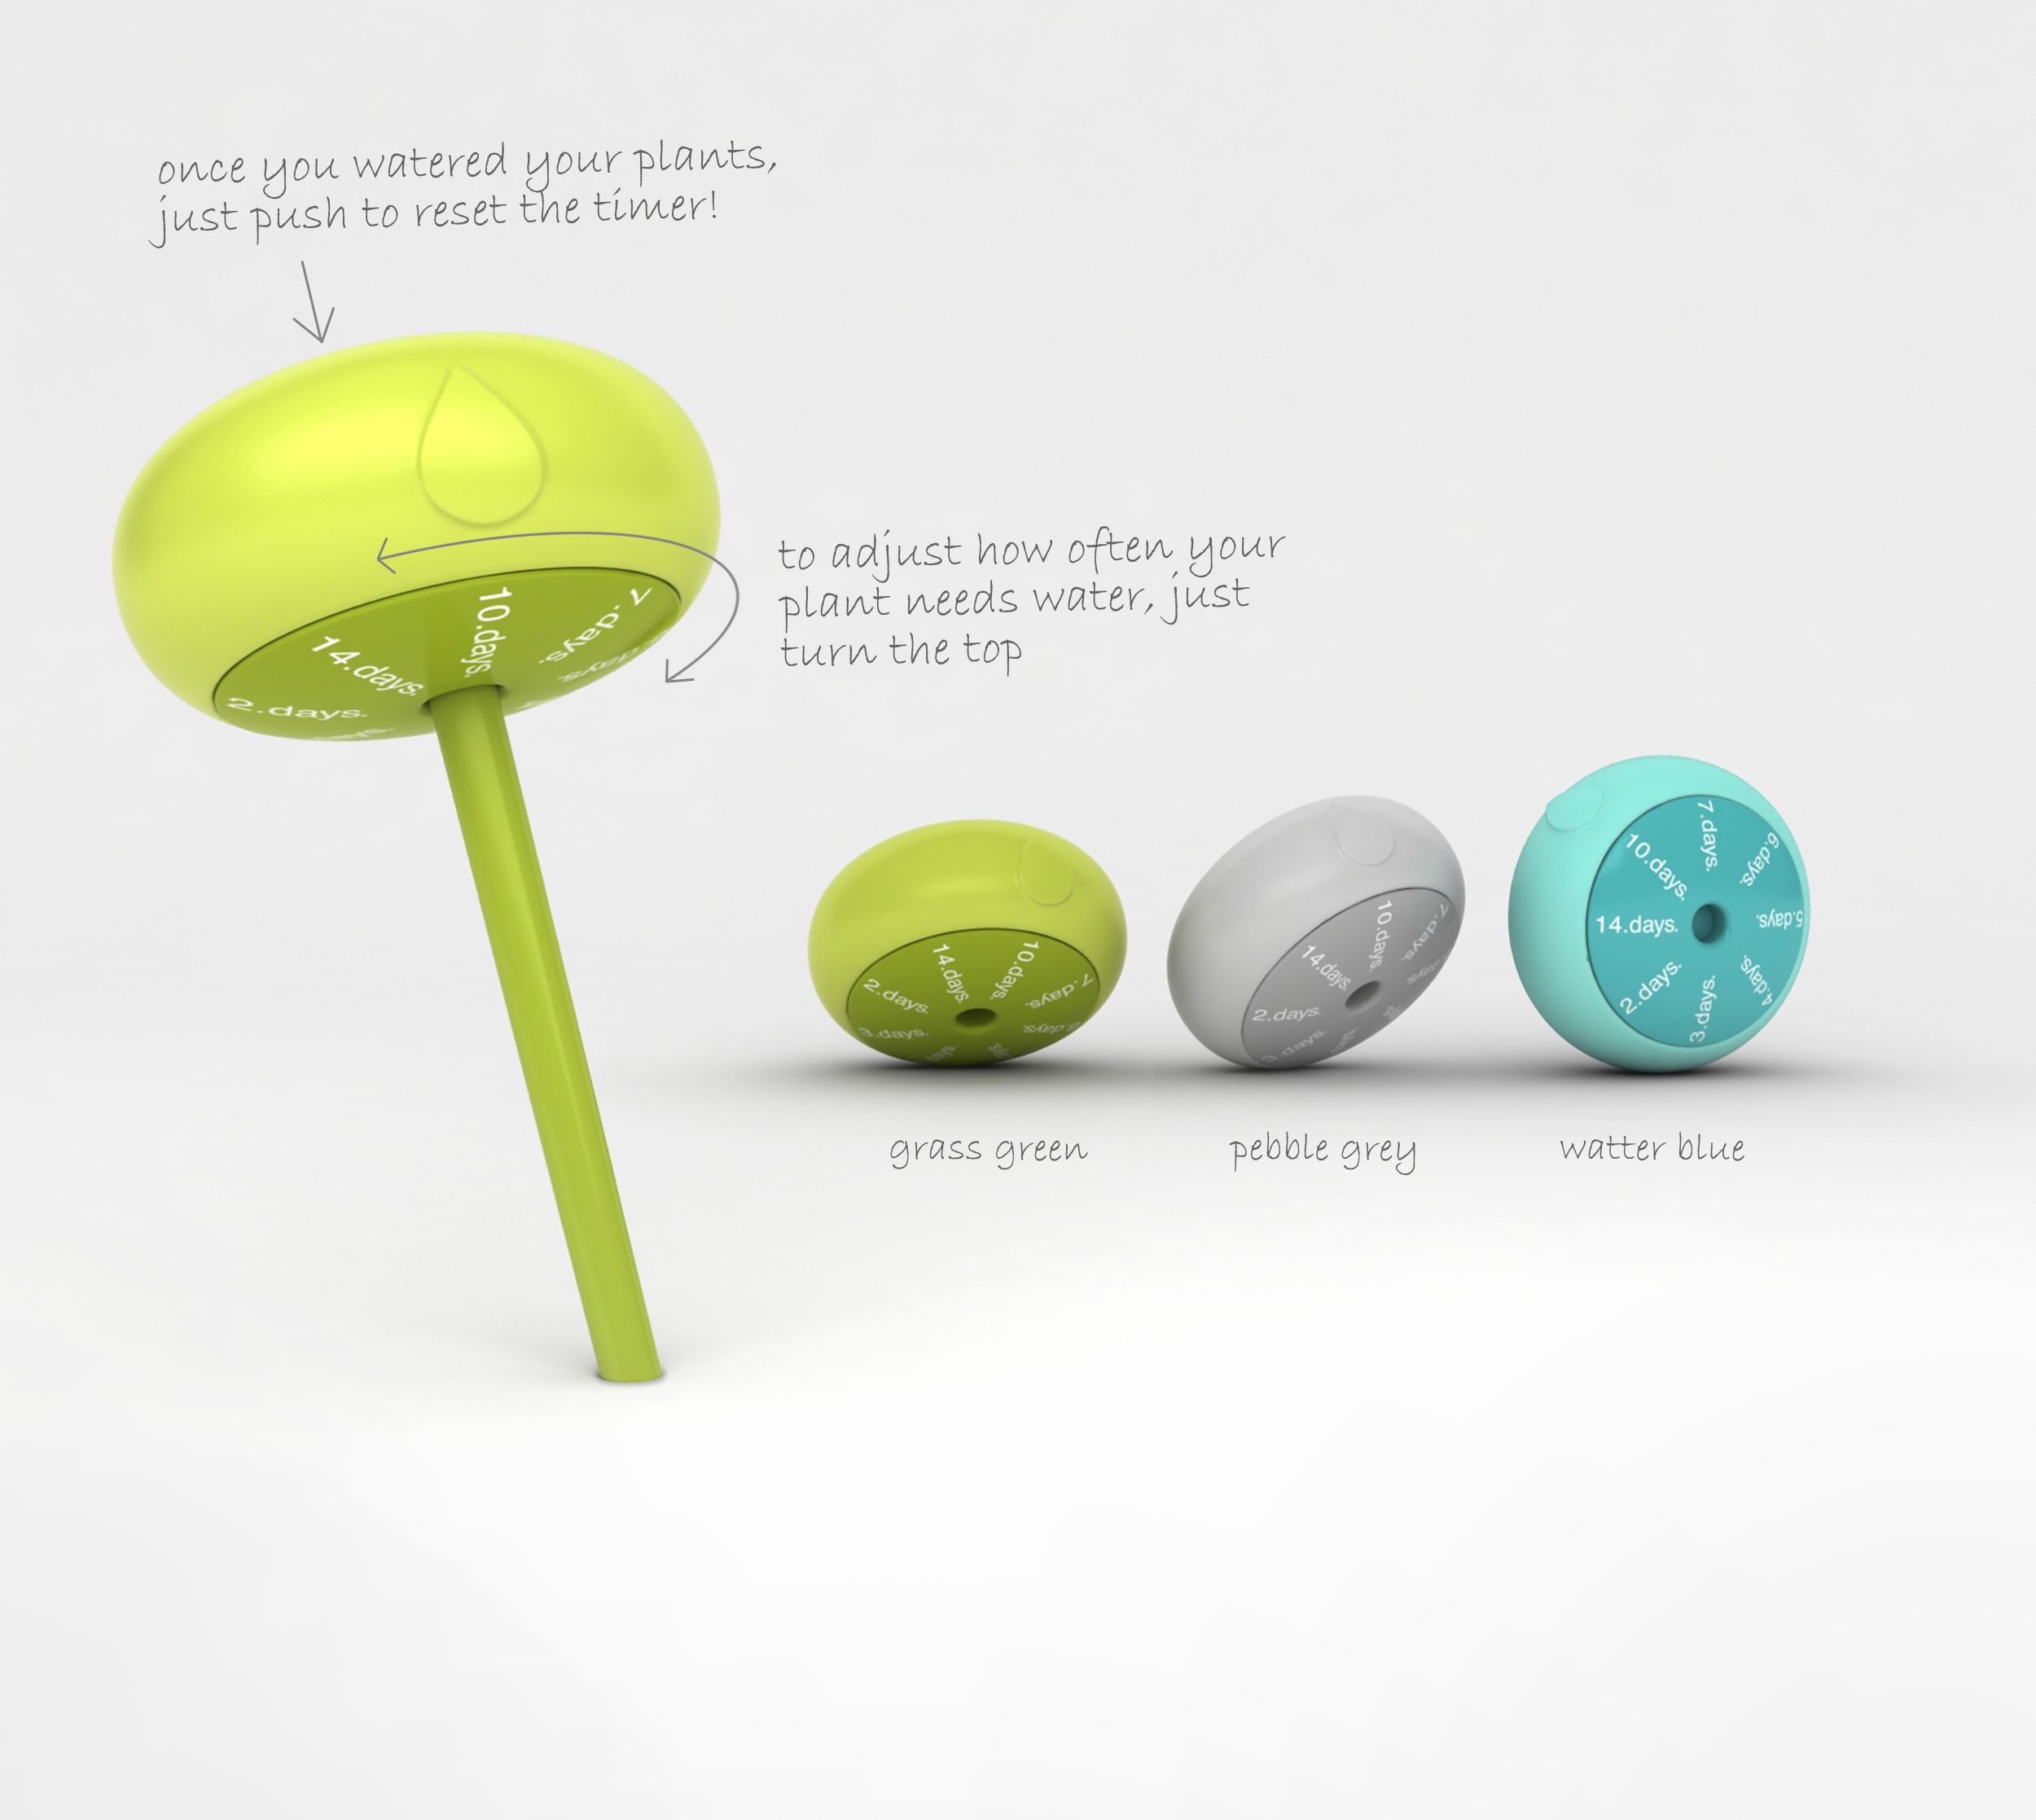 the droplet reminds forgetful gardeners when to water their plants